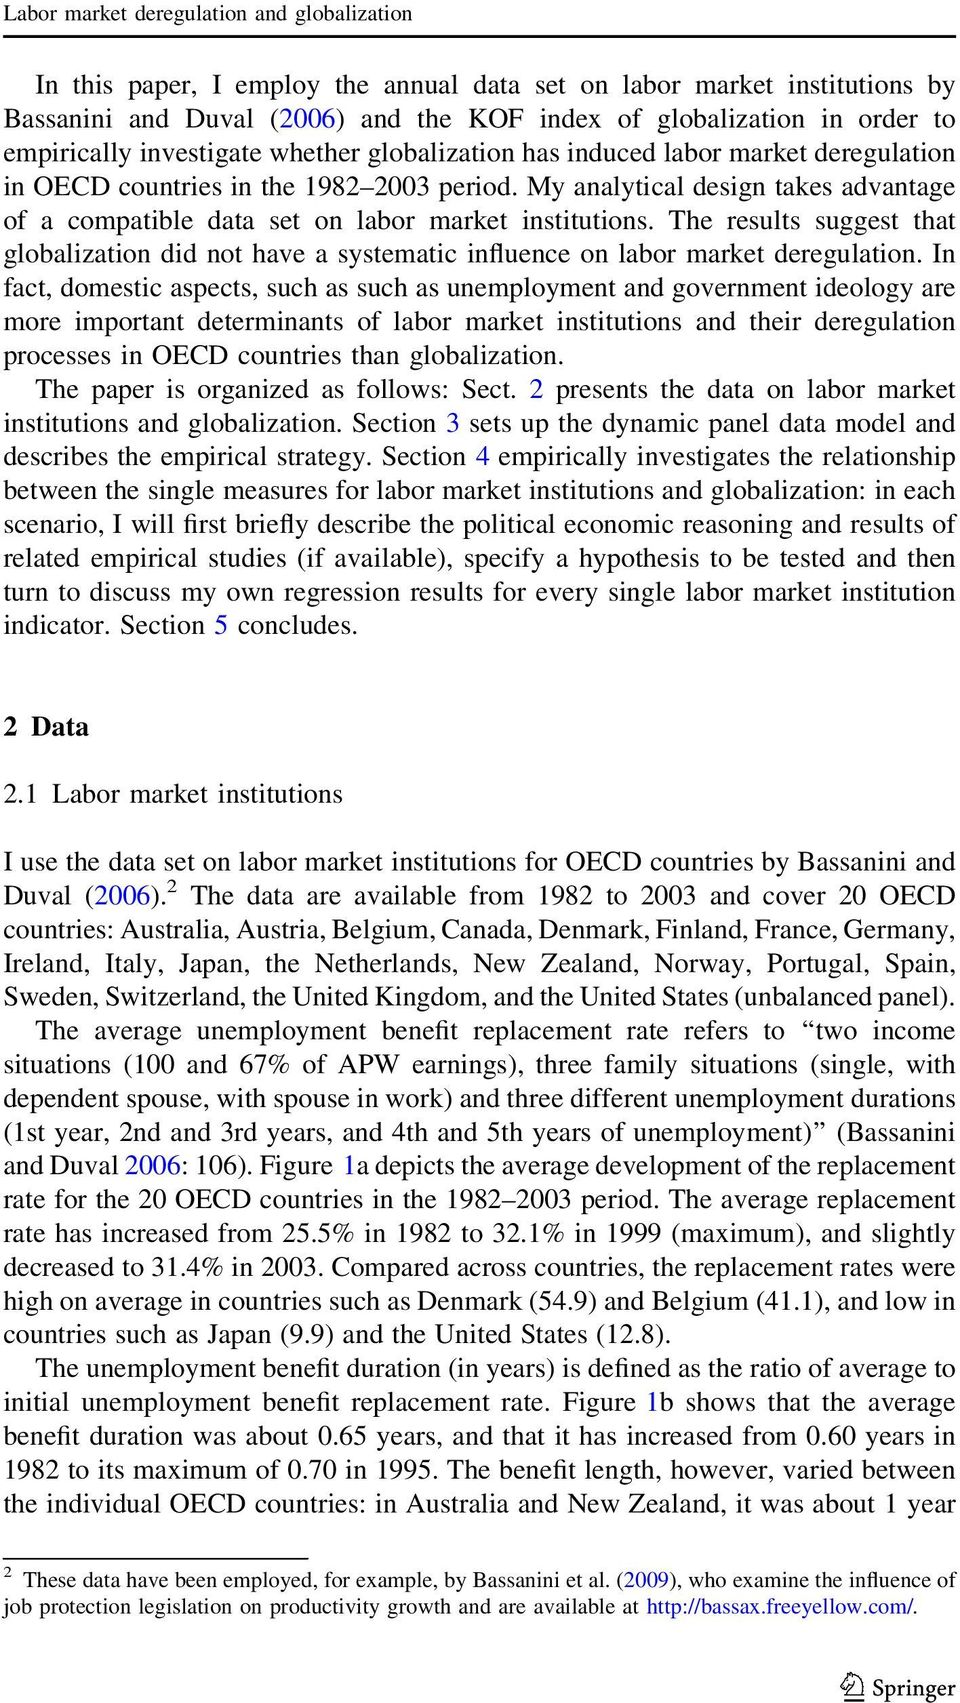 My analytical design takes advantage of a compatible data set on labor market institutions. The results suggest that globalization did not have a systematic influence on labor market deregulation.